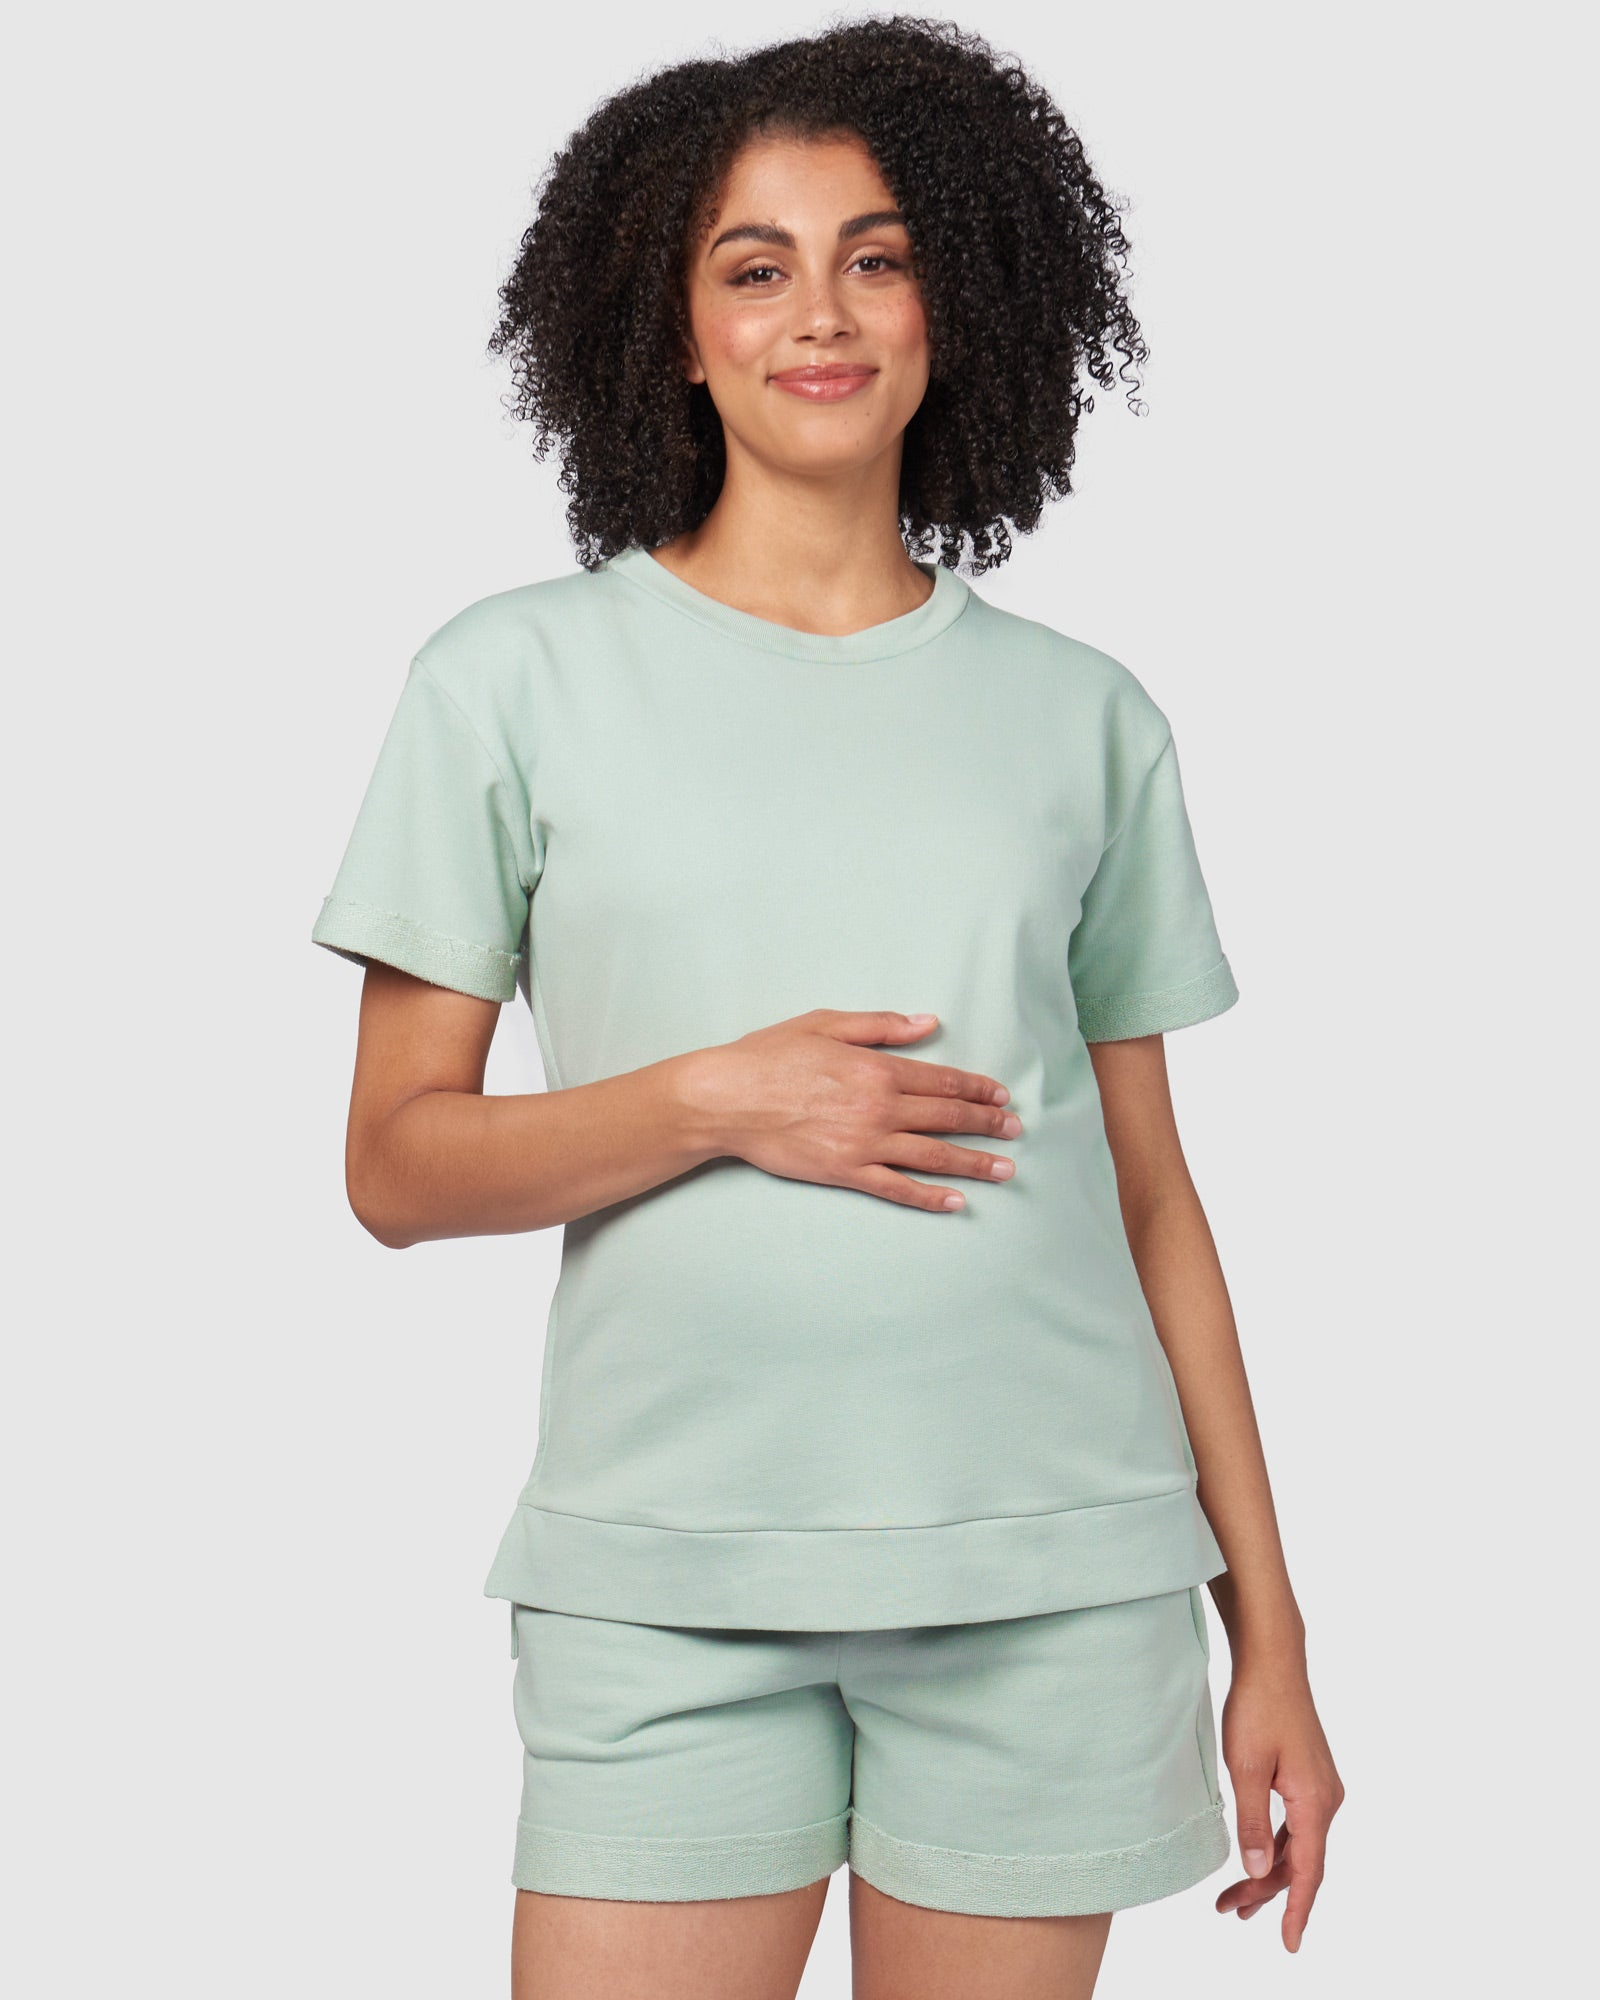 Tori Nursing Top